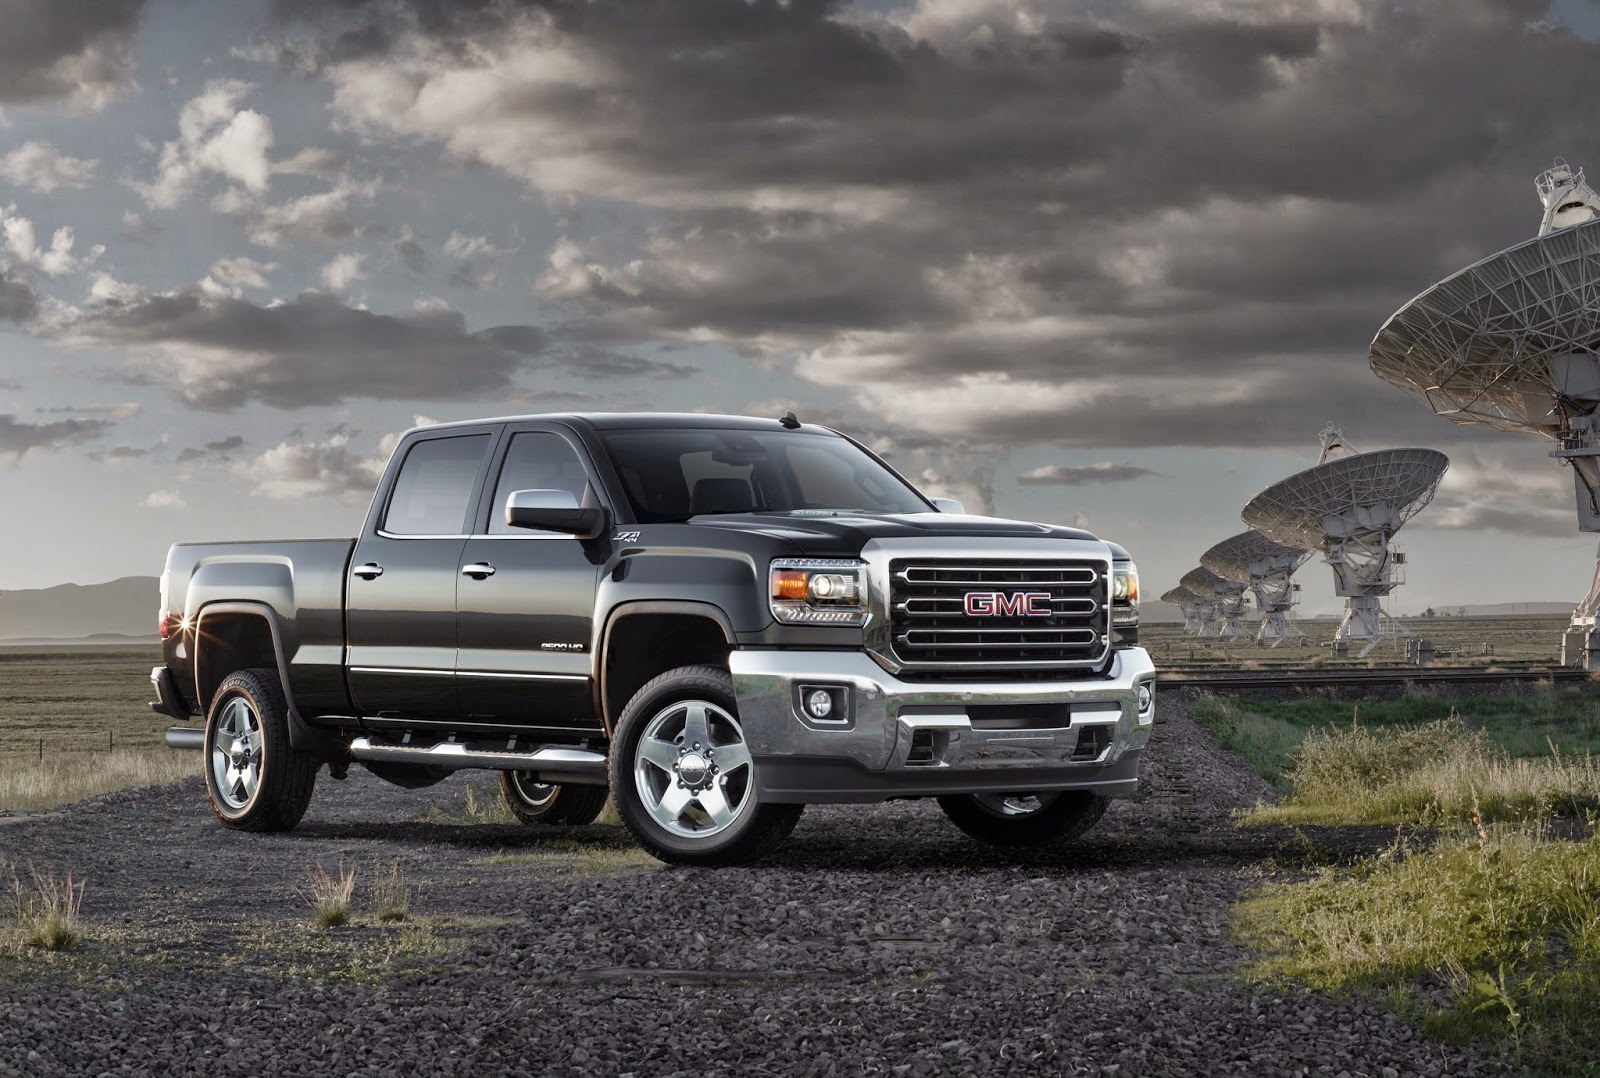 Meet Tirekicker S Most Expensive Pickup Truck So Far The 2017 Gmc Sierra 2500 Hd Double Cab Slt